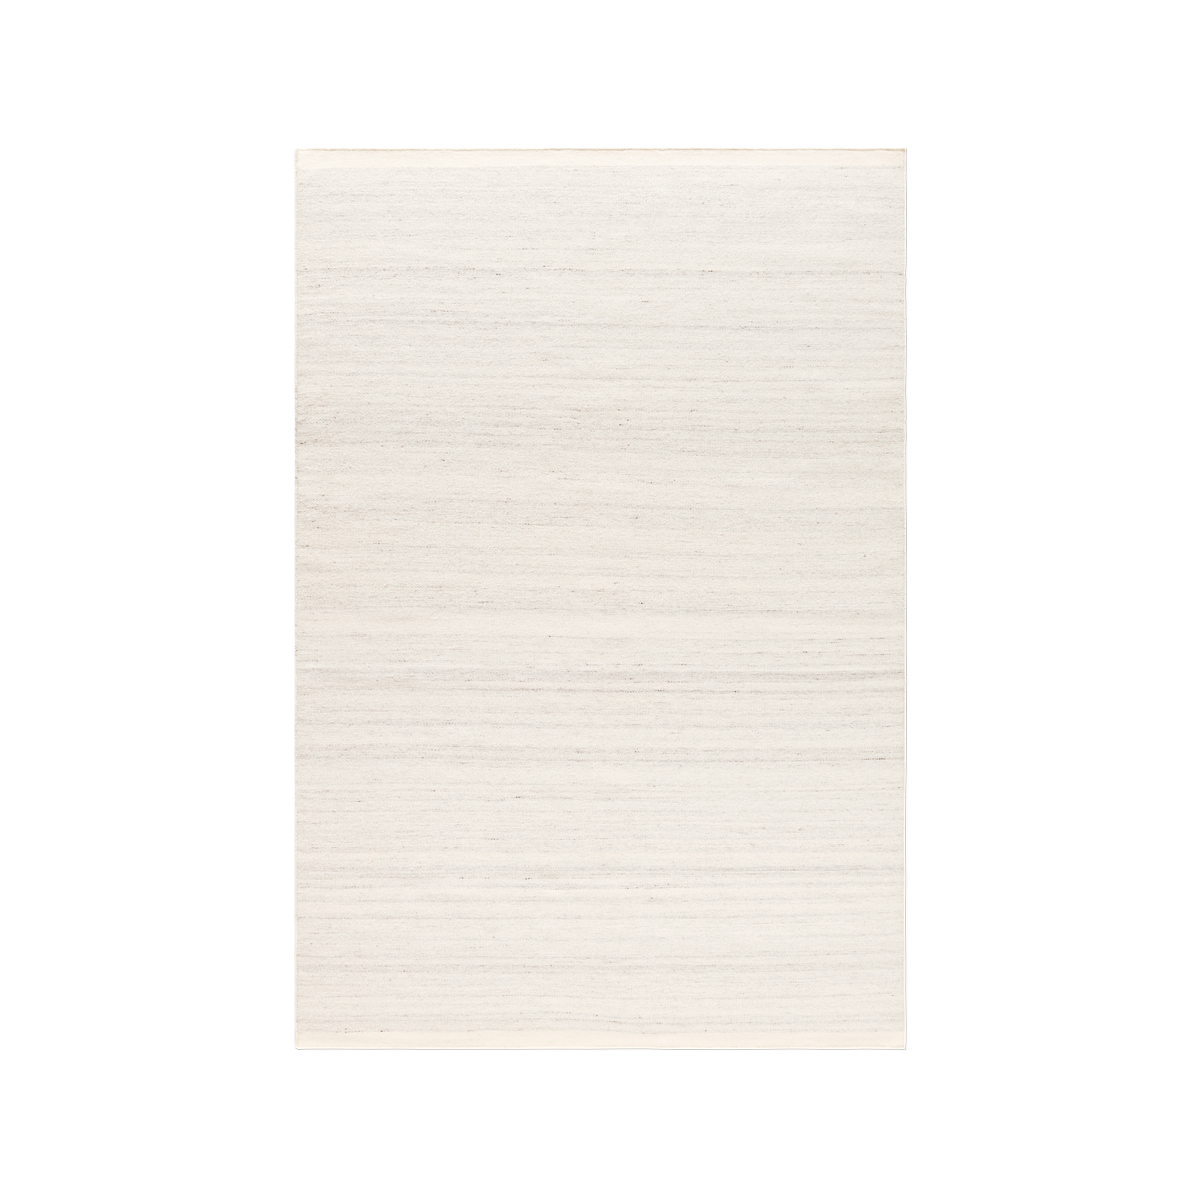 Product image of the flatweave rug Zero in color Cream Mix. The rug has two darker borders at the short sides.